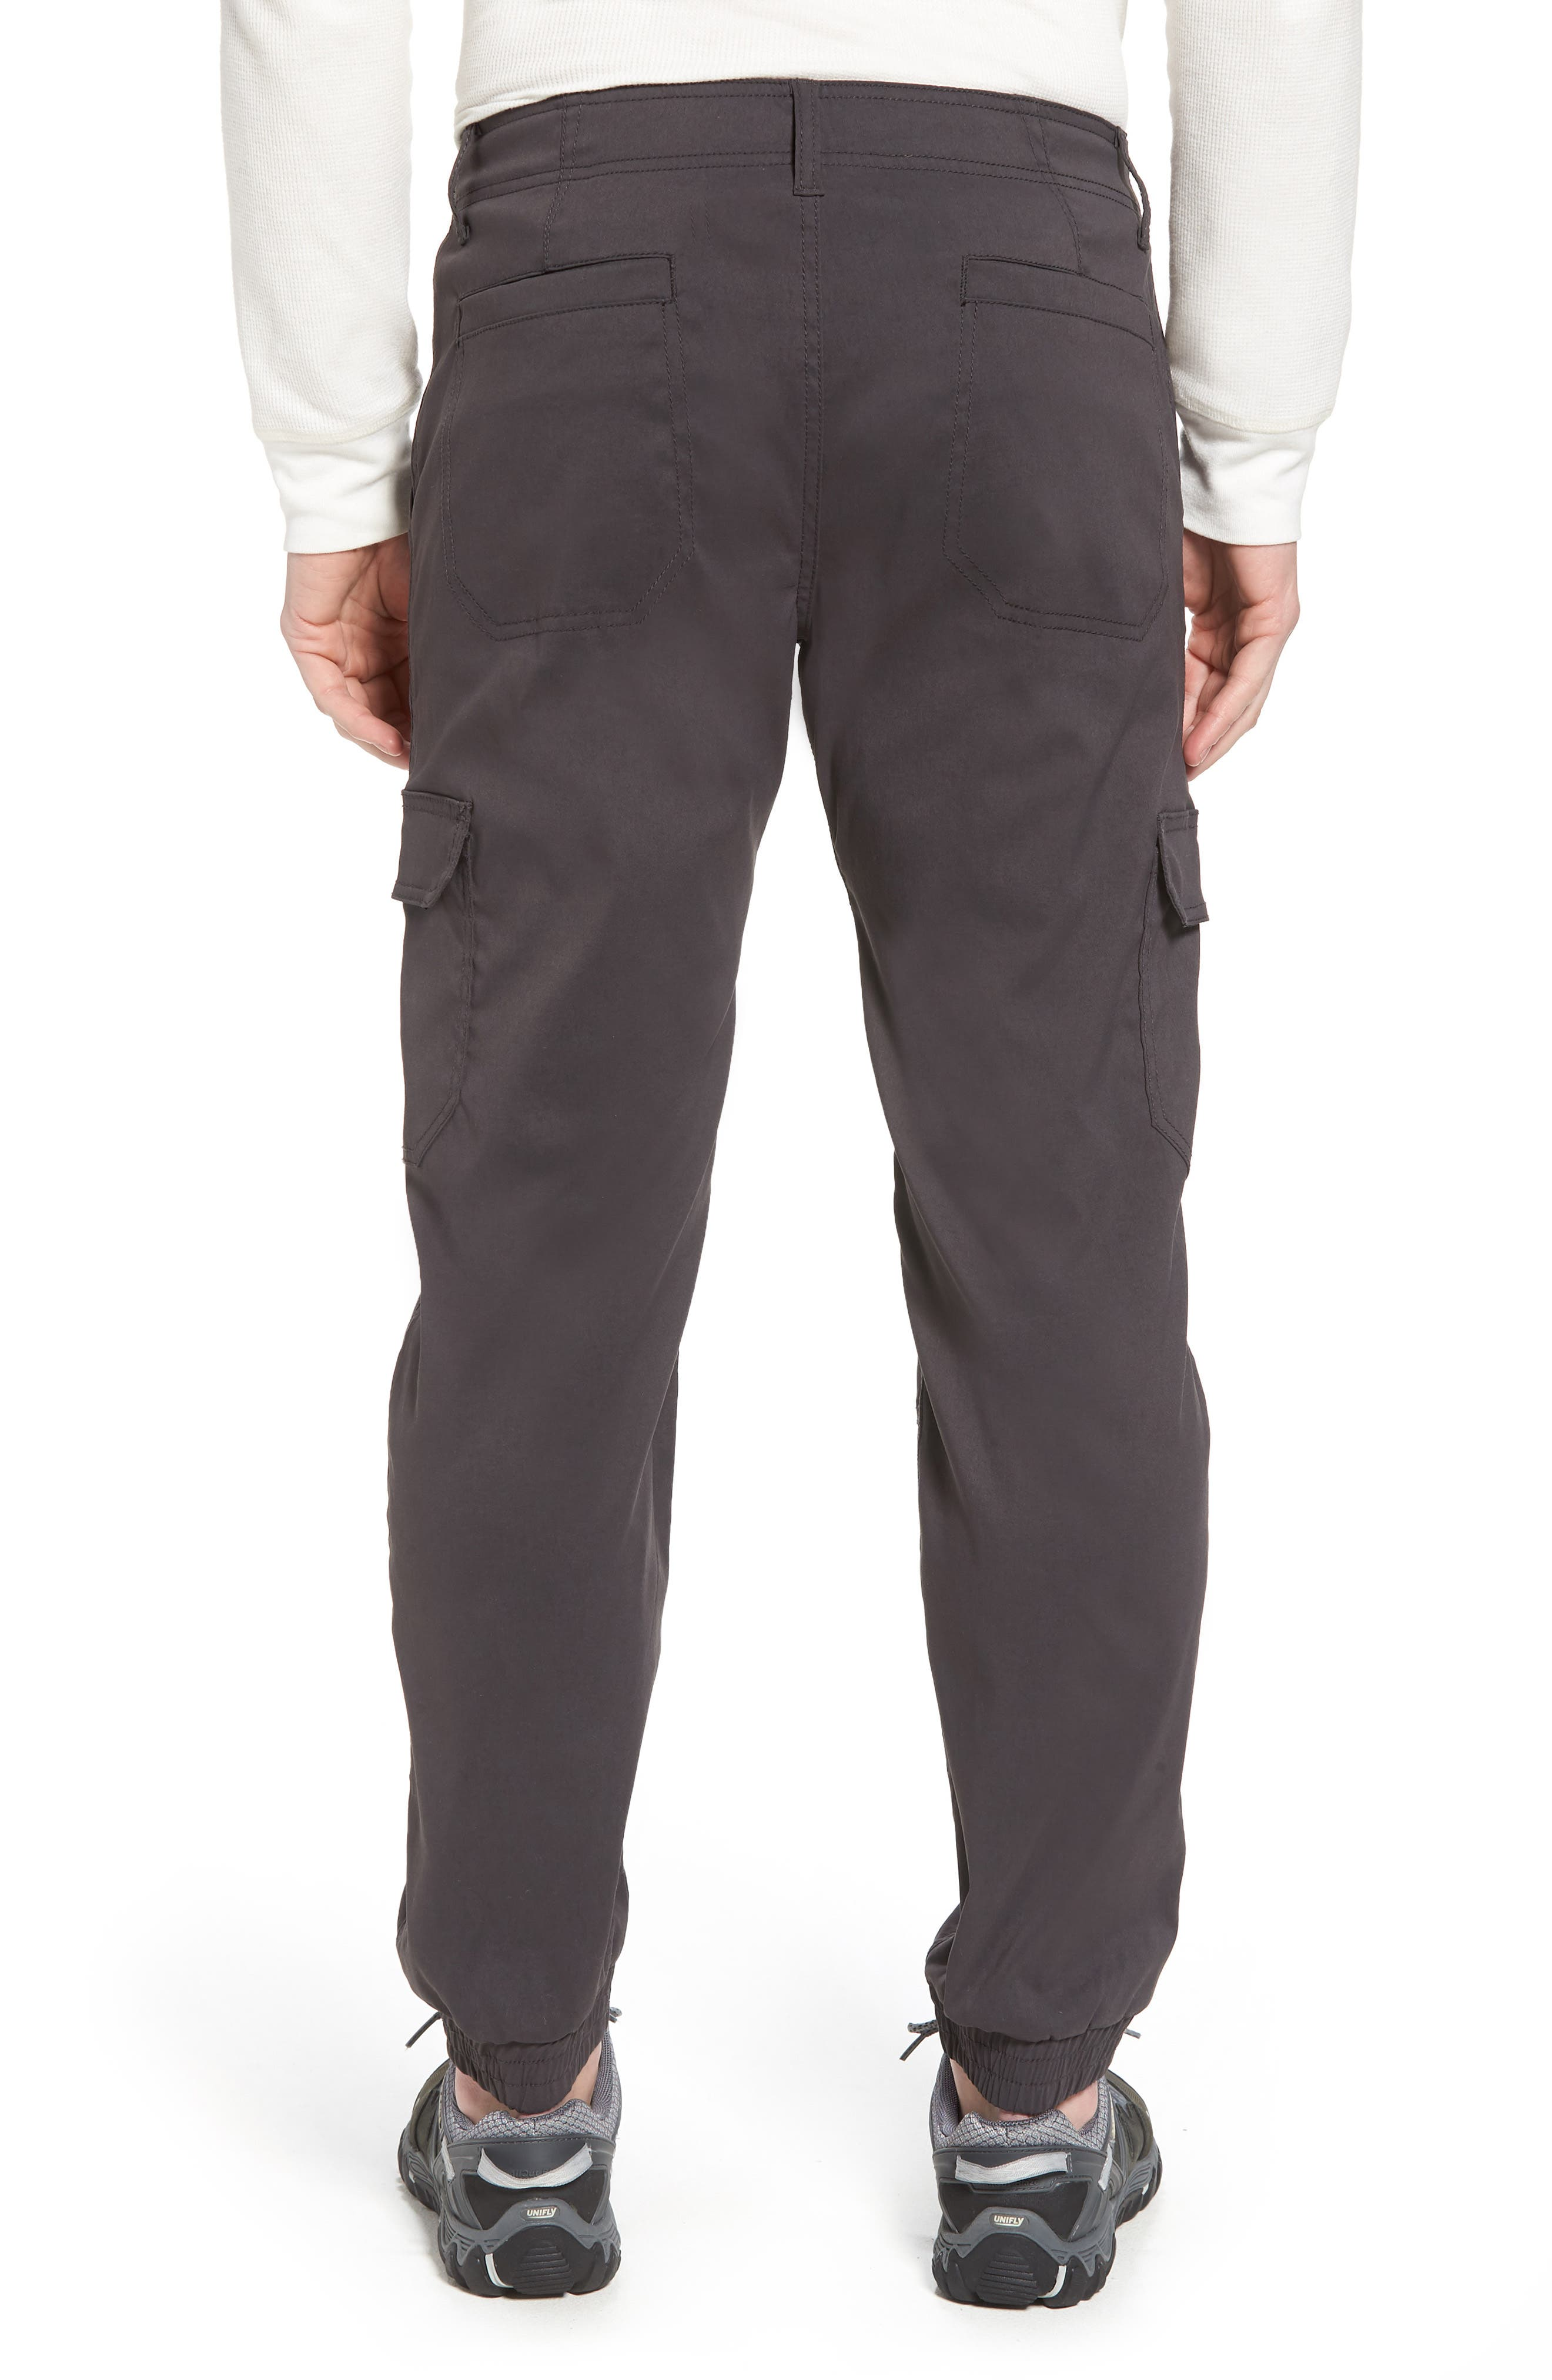 Zion Water Repellent Stretch Jogger Pants,                             Alternate thumbnail 2, color,                             Charcoal